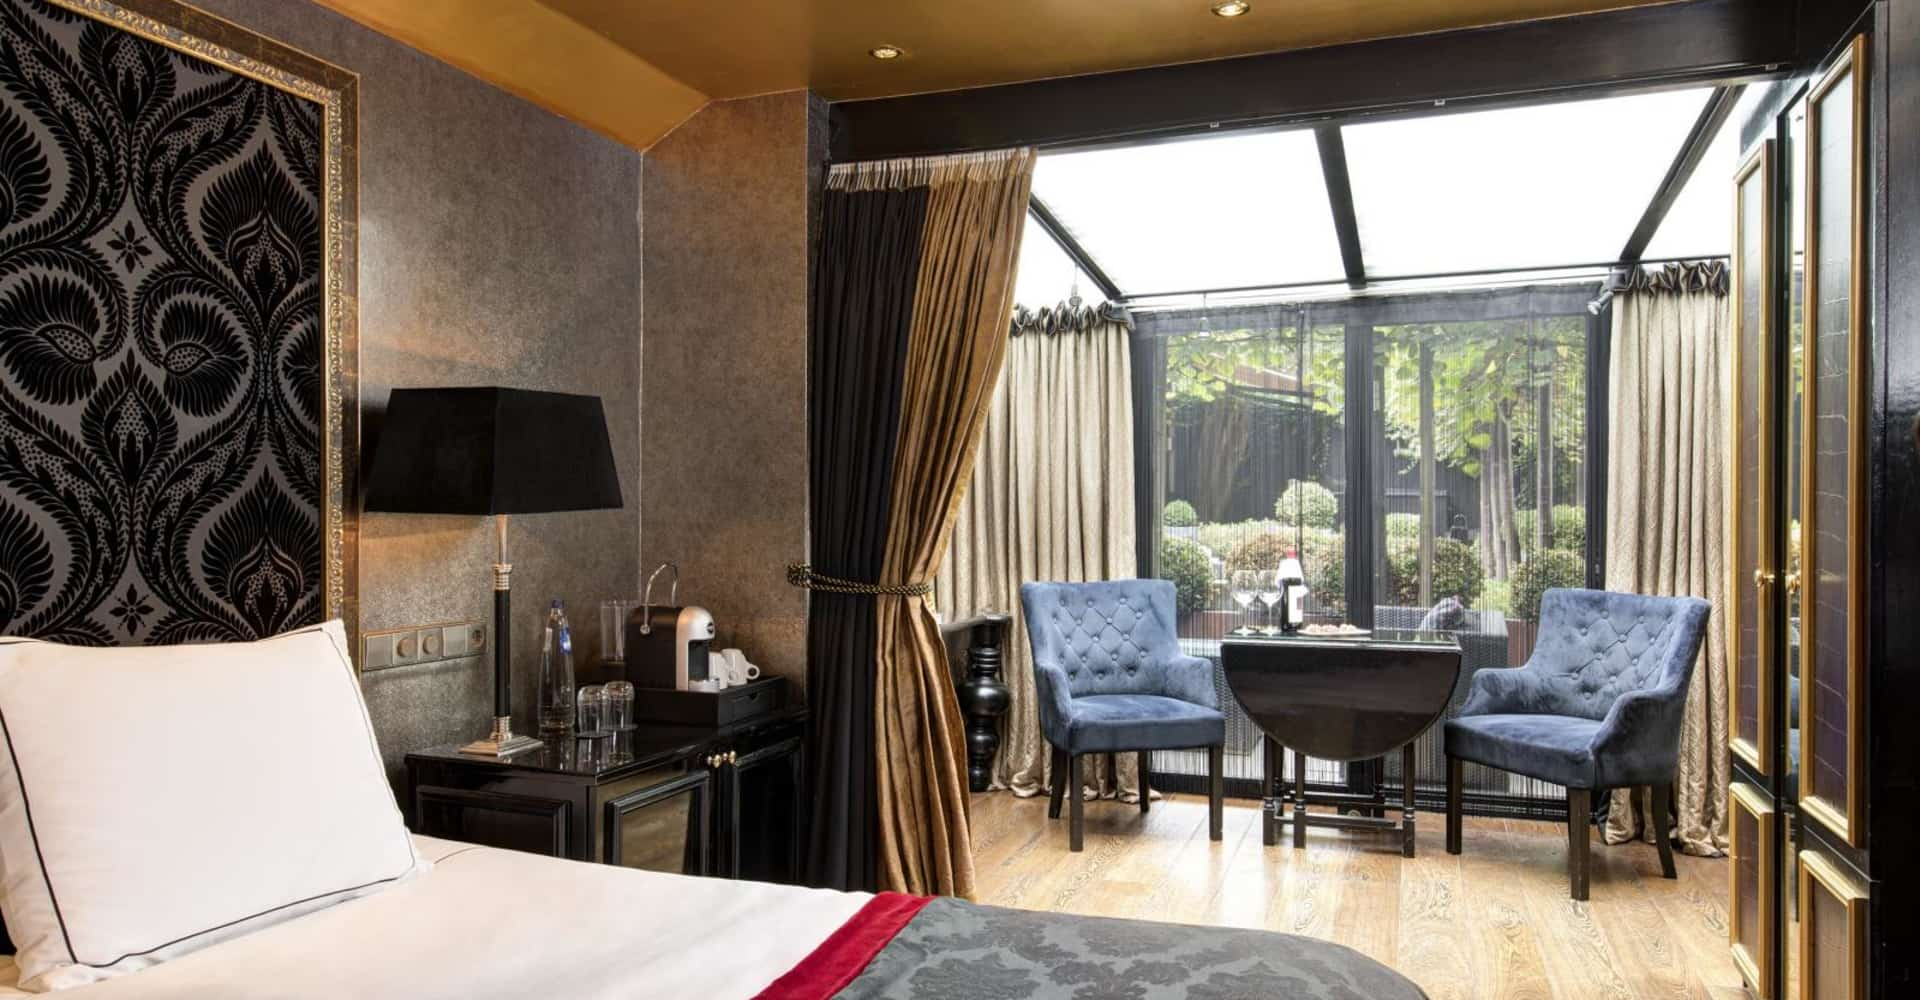 Offers - The Pavilions Hotels & Resorts